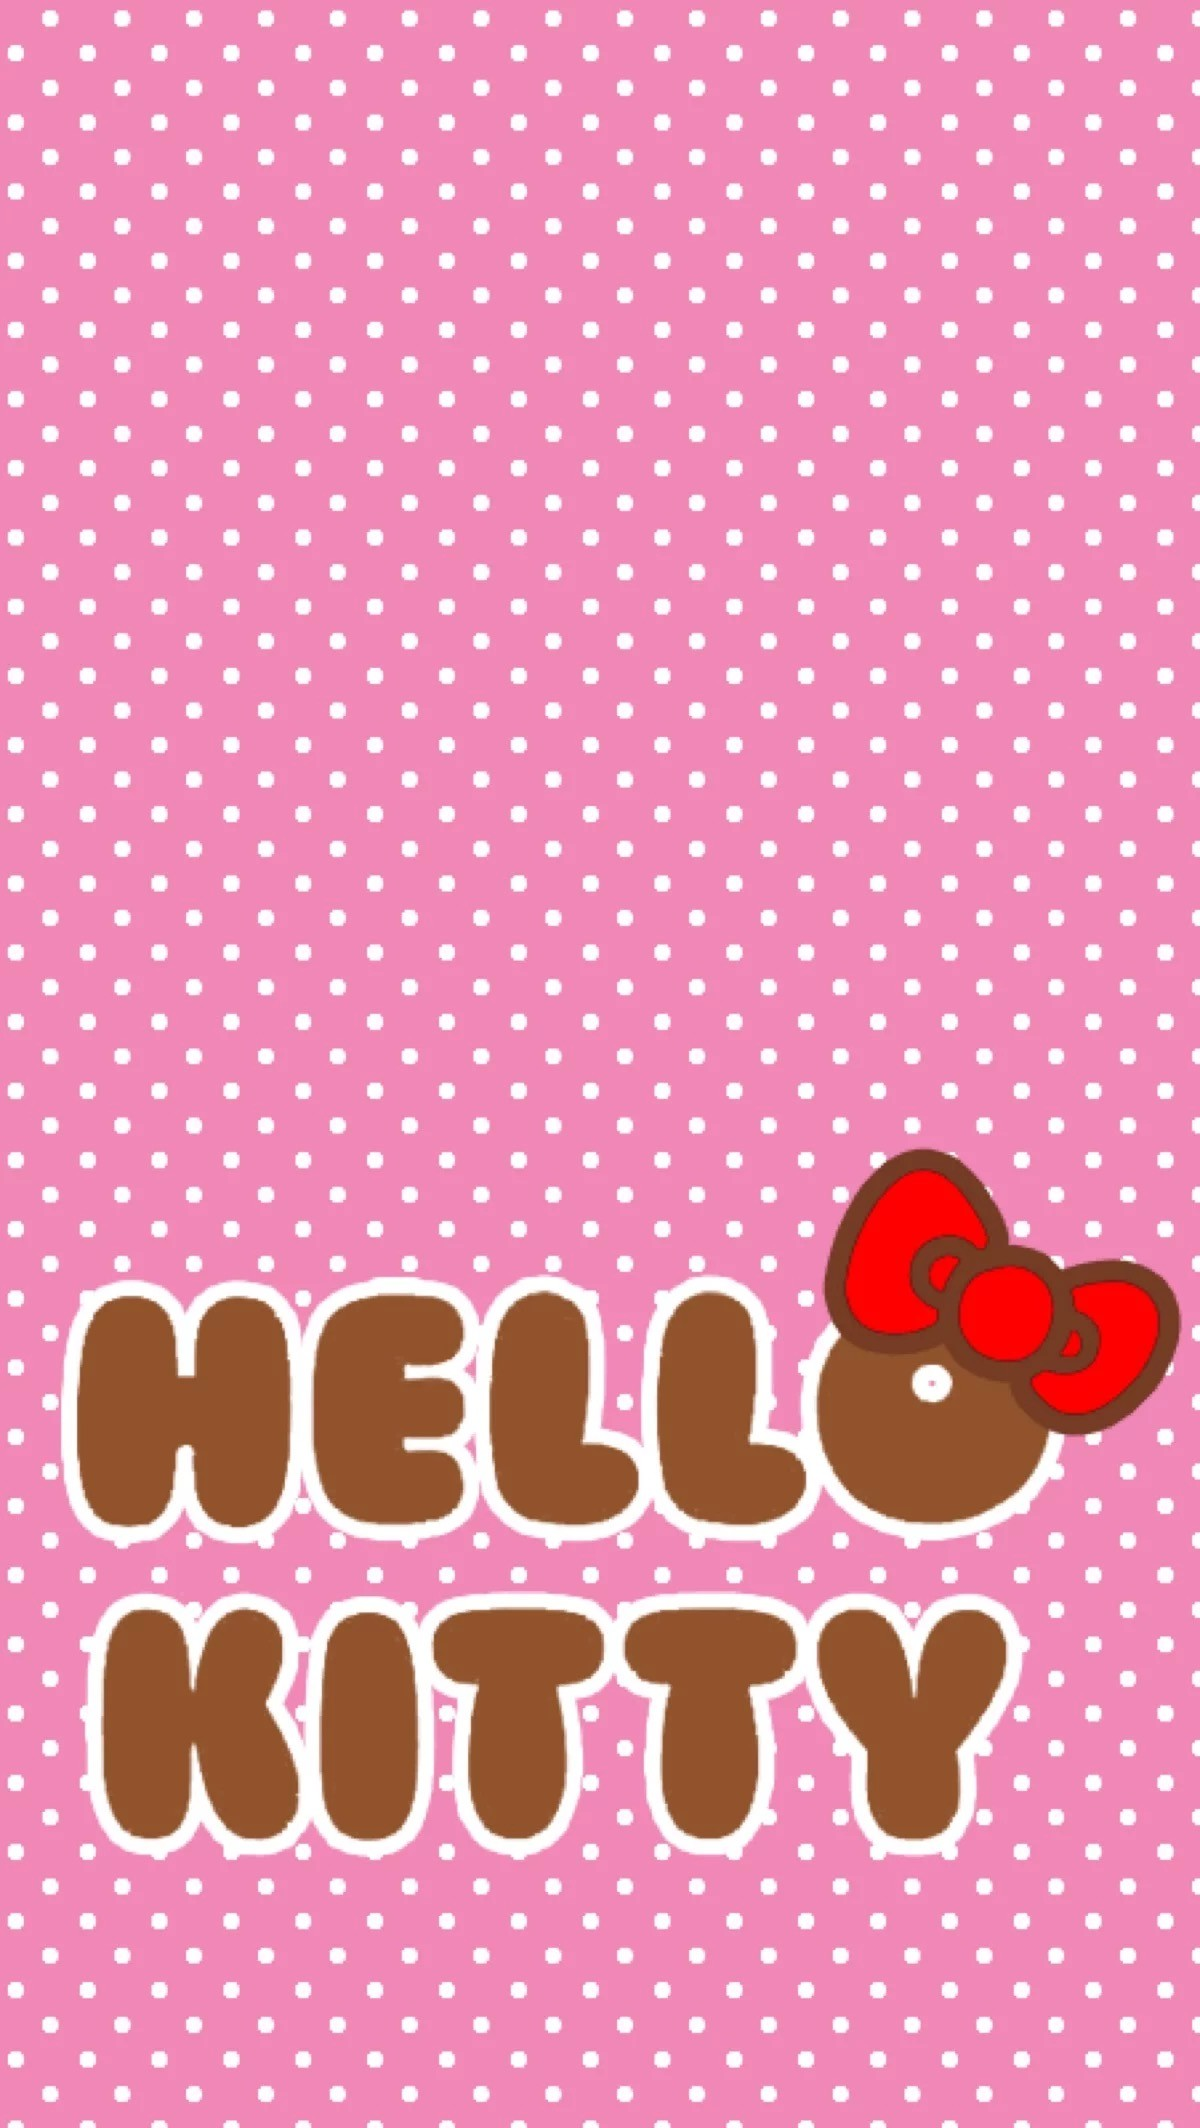 Cute Hello Kitty Wallpaper (55+ images)